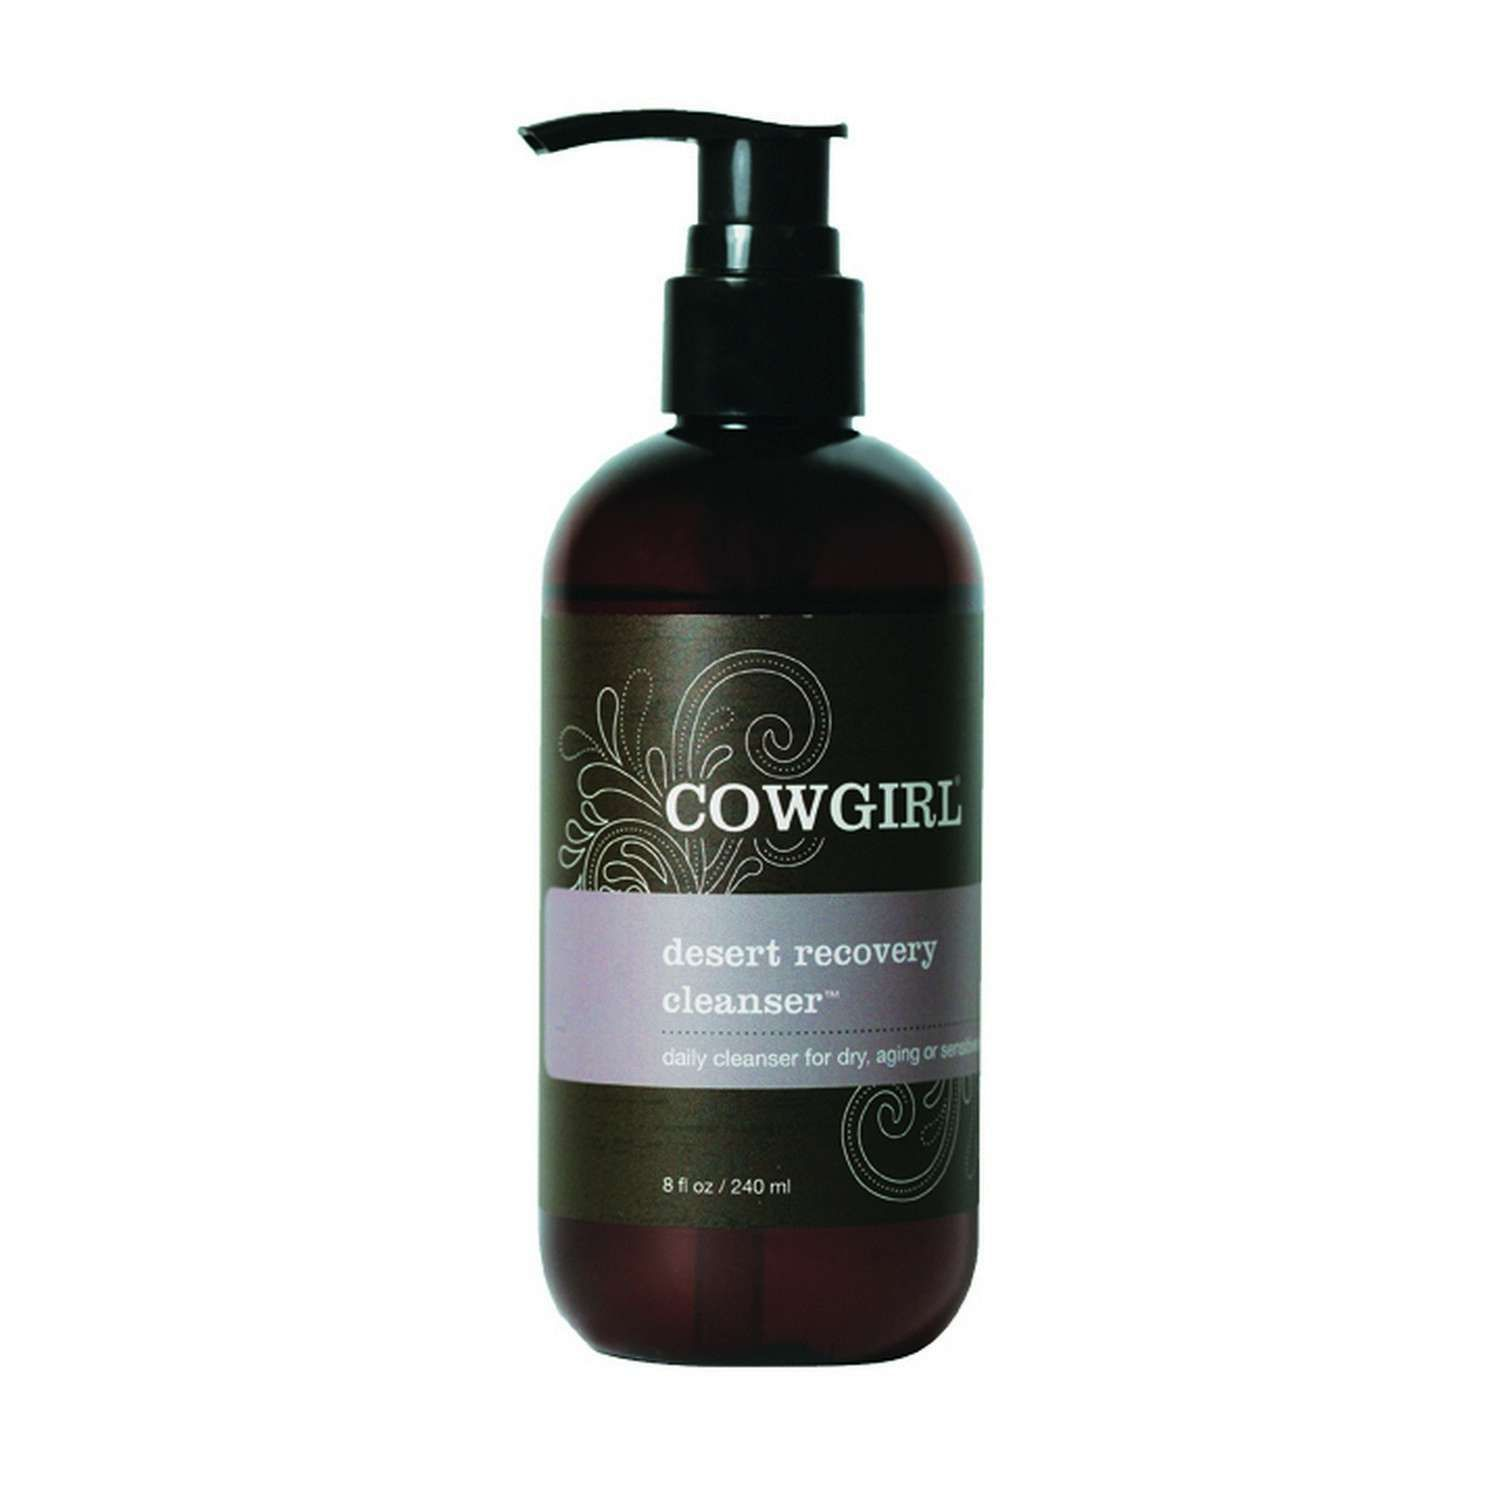 COWGIRL desert recovery cleanser (8 fl oz / 240 ml)